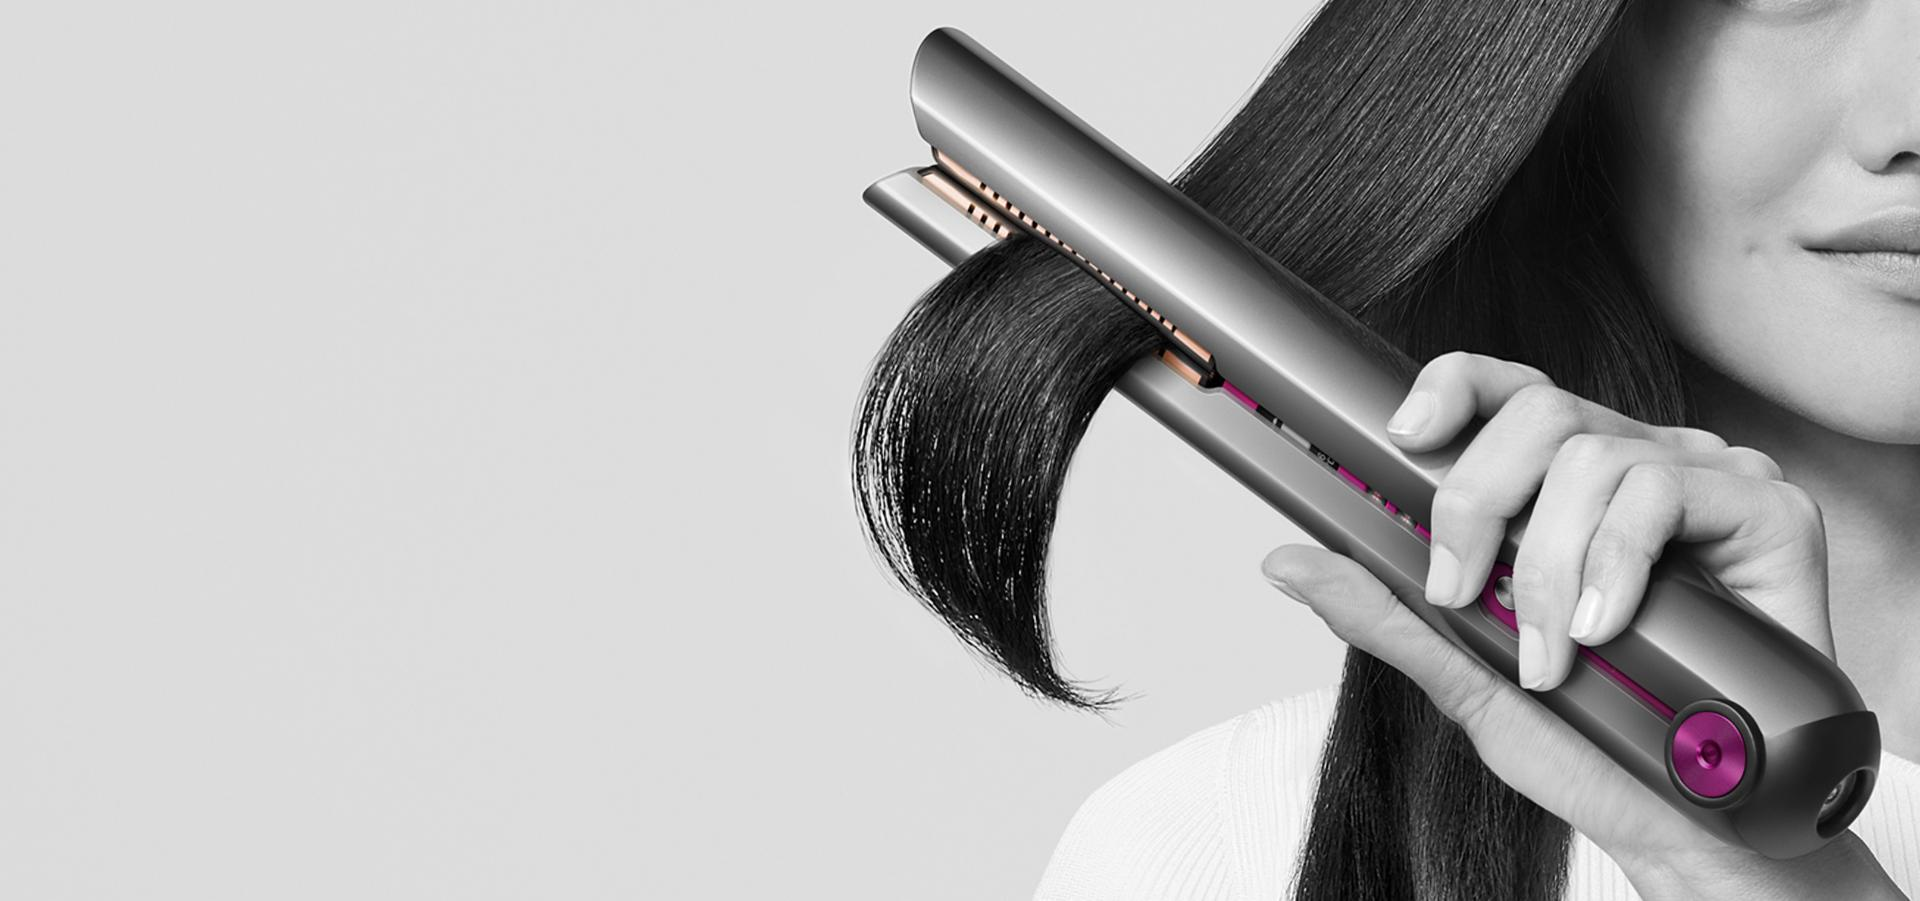 Woman straightening her hair with the Dyson Corrale straightener